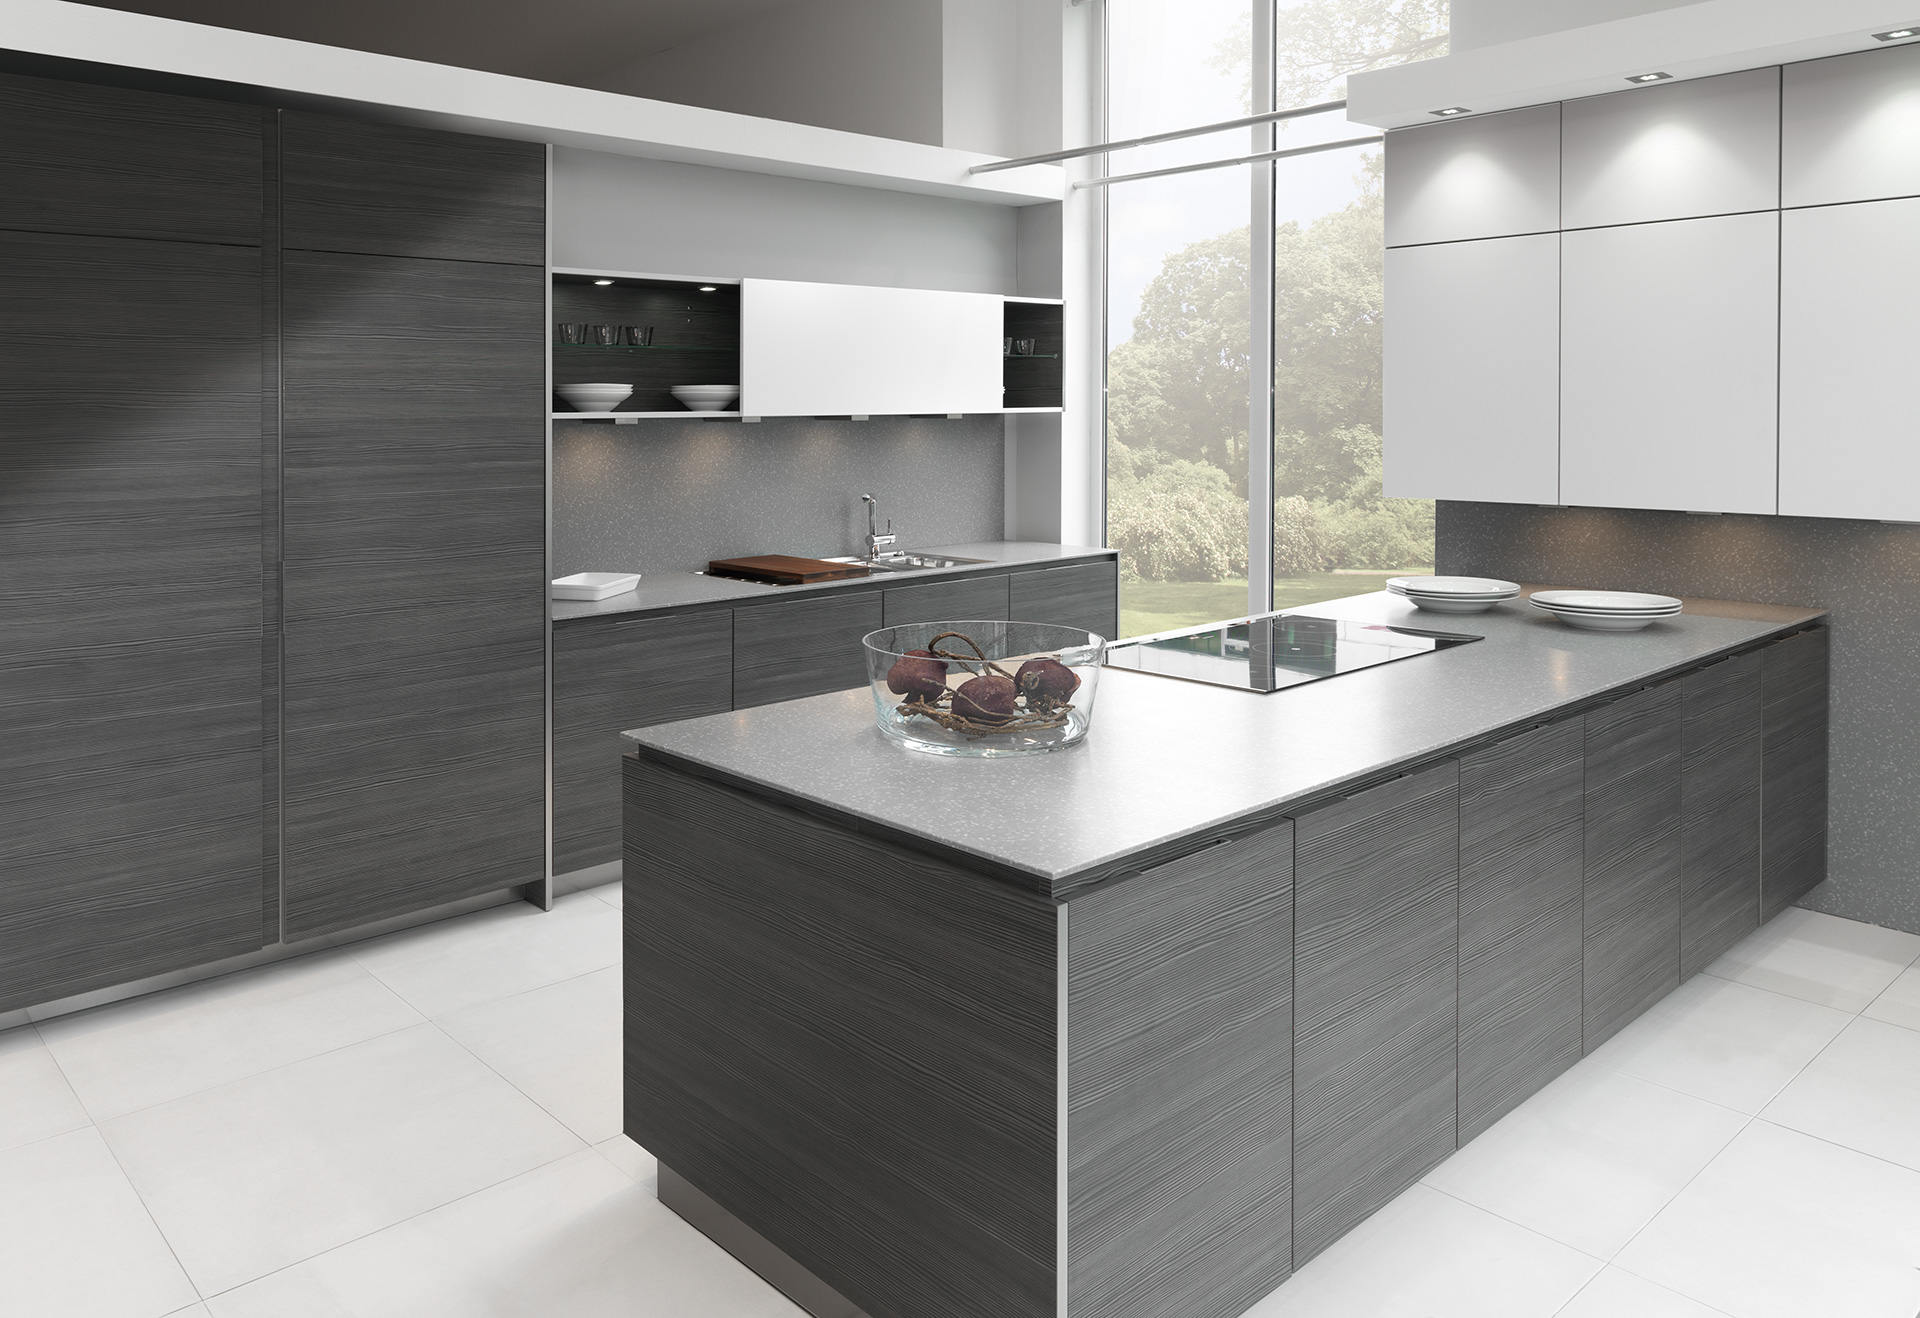 German mueller kitchen stunning kitchen gaggenau neff for Neff küche